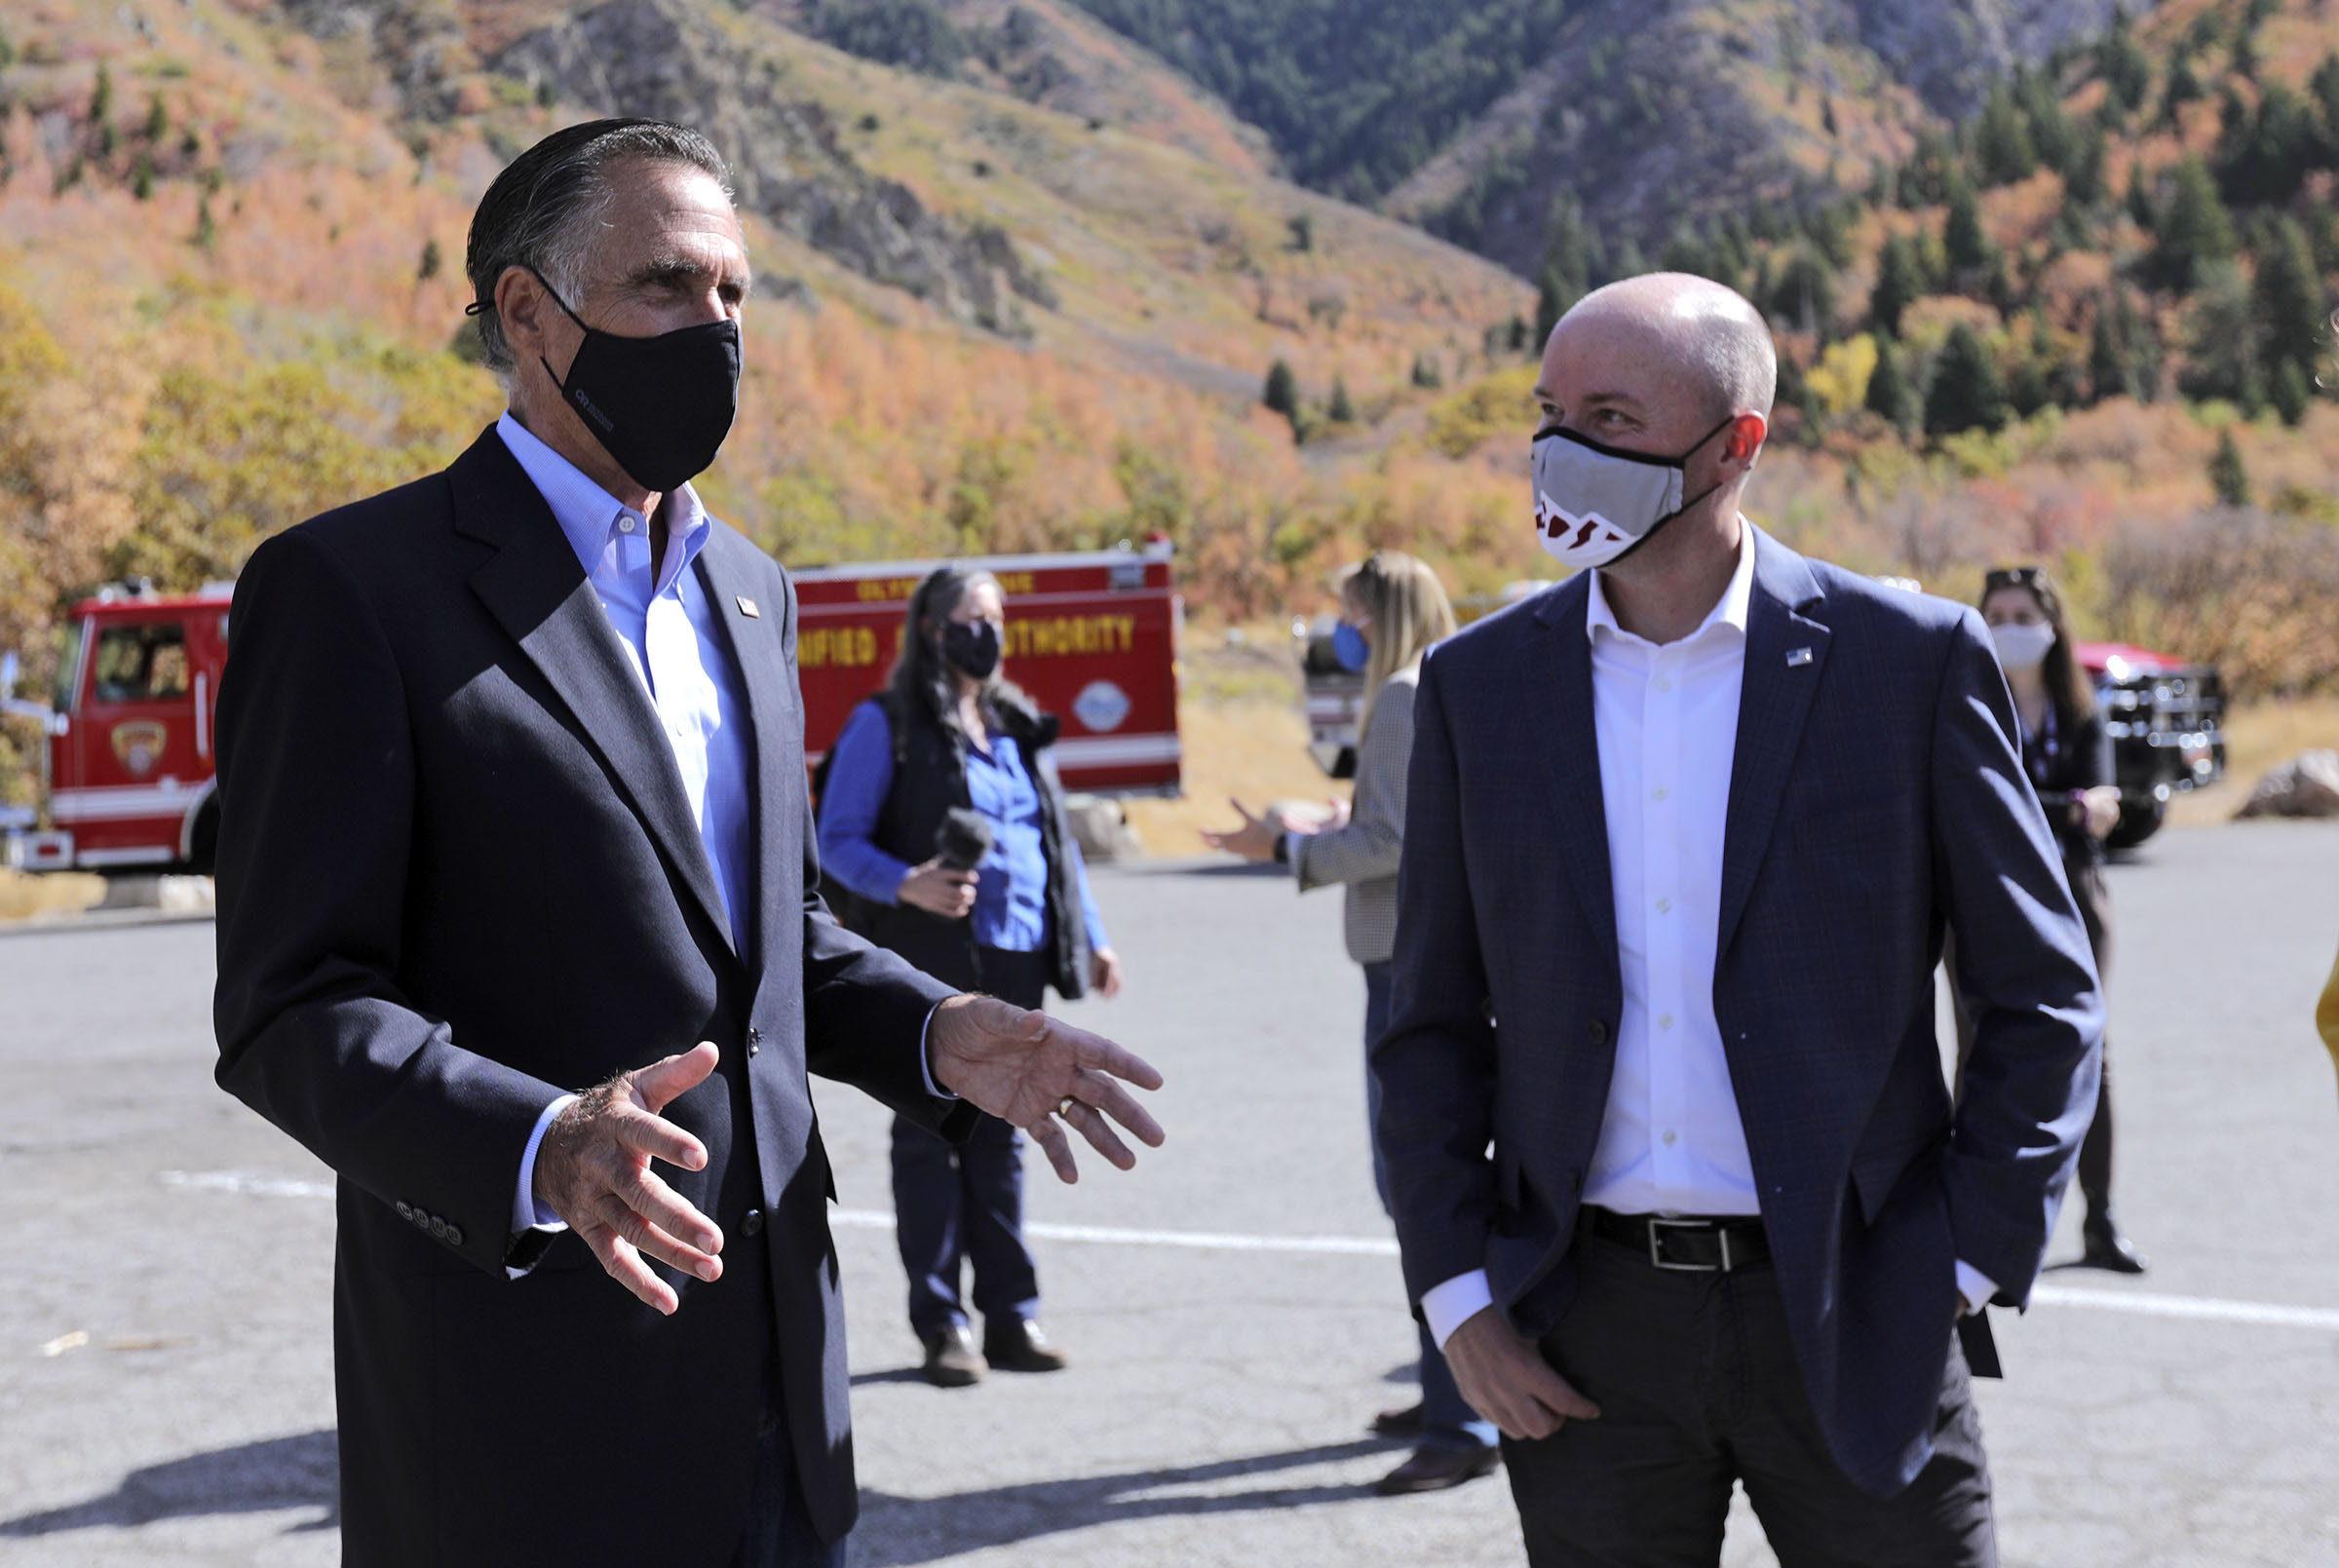 Sen. Mitt Romney, R-Utah, talks with Lt. Gov. Spencer Cox after a press conference announcing Romney's plan to establish a wildfire commission, to review national wildfire policies and make recommendations to Congress, at the Neff's Canyon trailhead in Millcreek on Thursday, Oct. 15, 2020. A recent wildfire in Neff's Canyon is 100% contained but still smoldering.